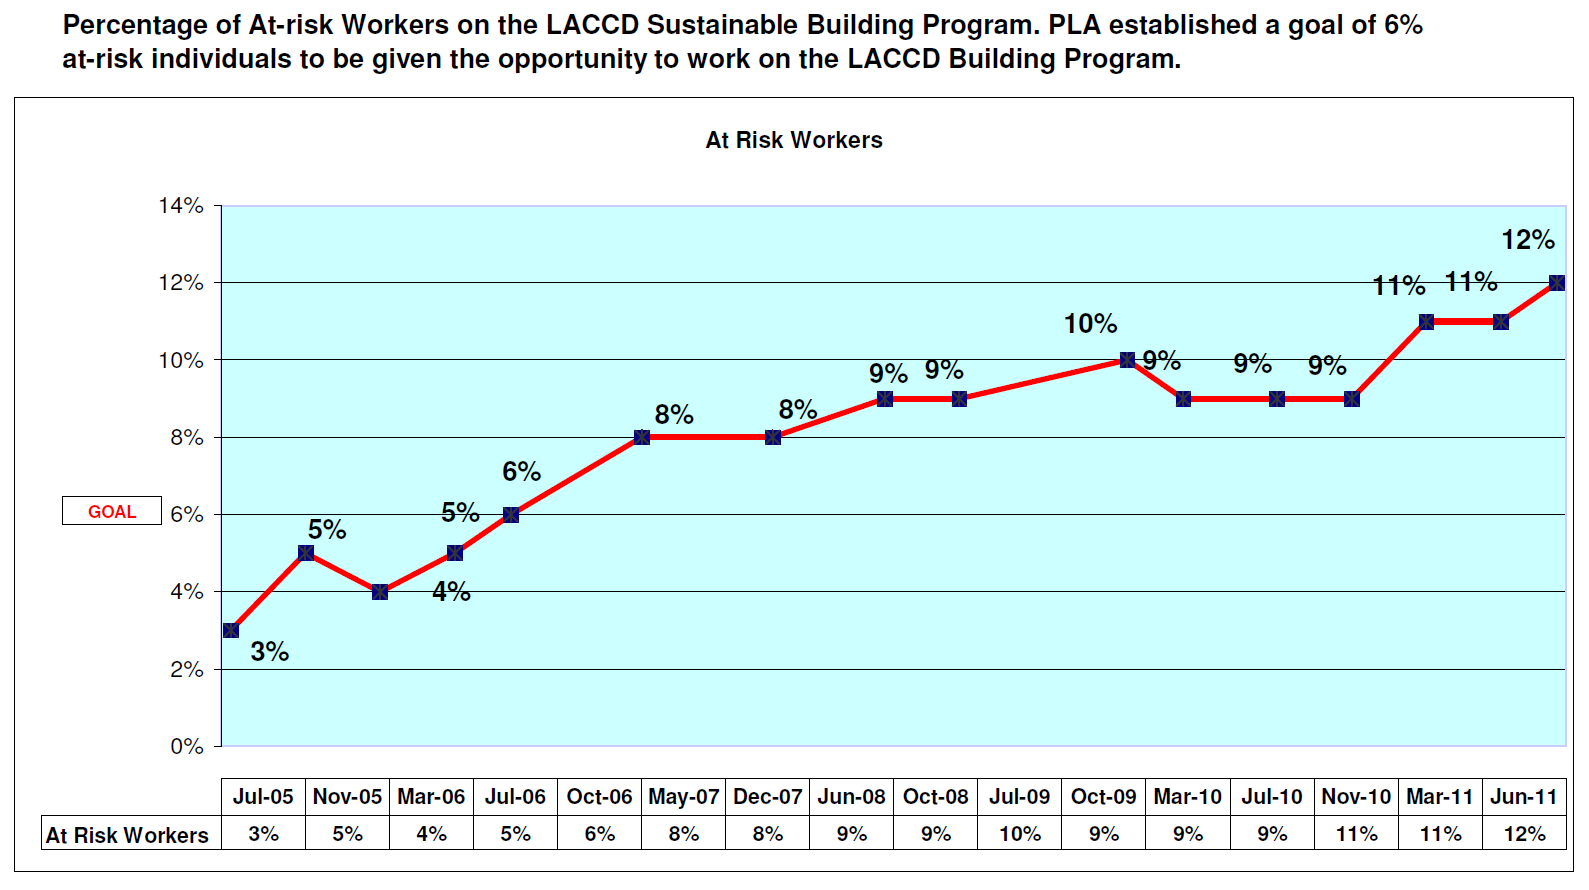 Source: Build LACCD Program. Report retrieved from Michael Flores September 19, 2011 From this 30% of workers, the LACCD also set a goal of 20% At-Risk workers.